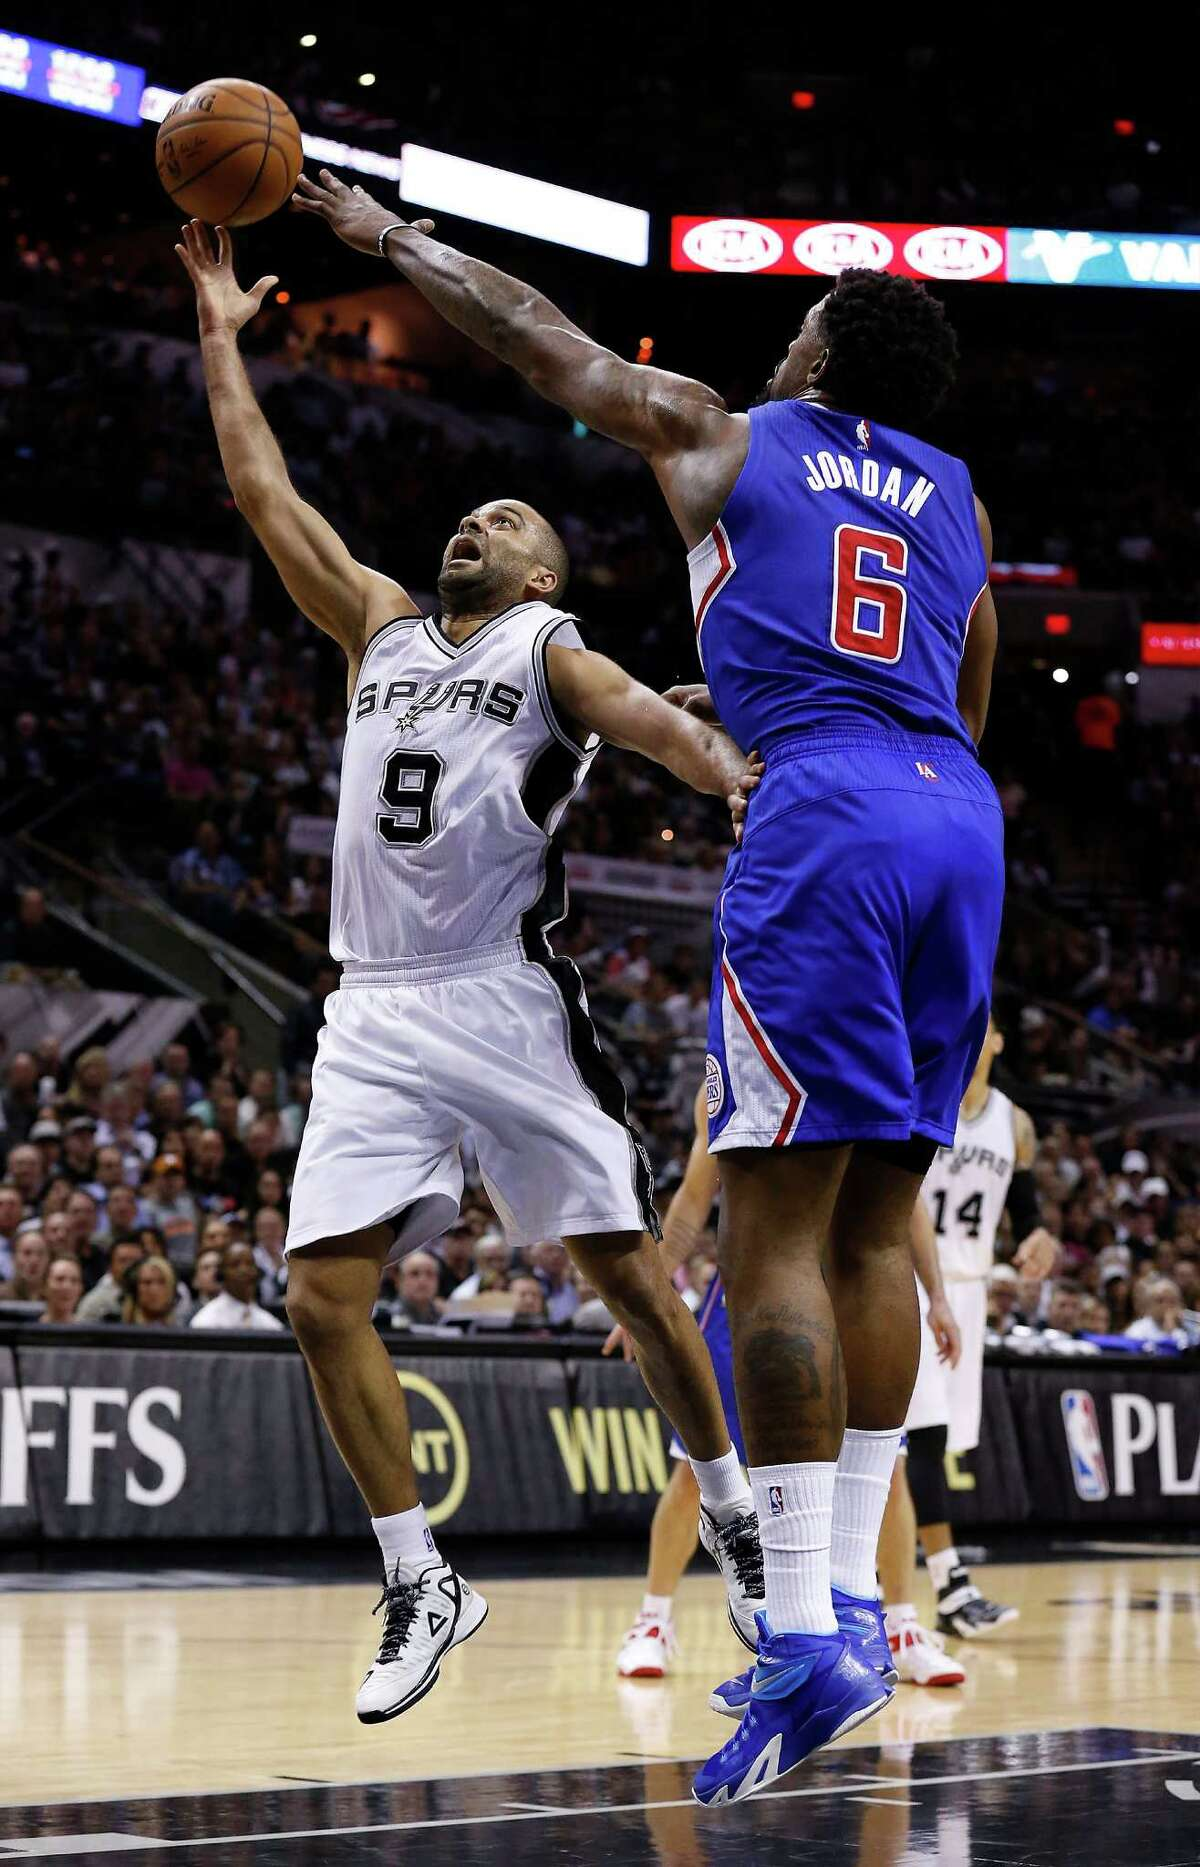 Spurs' Tony Parker (09) shoots against Los Angeles Clippers' DeAndre Jordan (06) during Game 6 of the first round of the Western Conference playoffs at the AT&T Center on Thursday, Apr. 30, 2015.